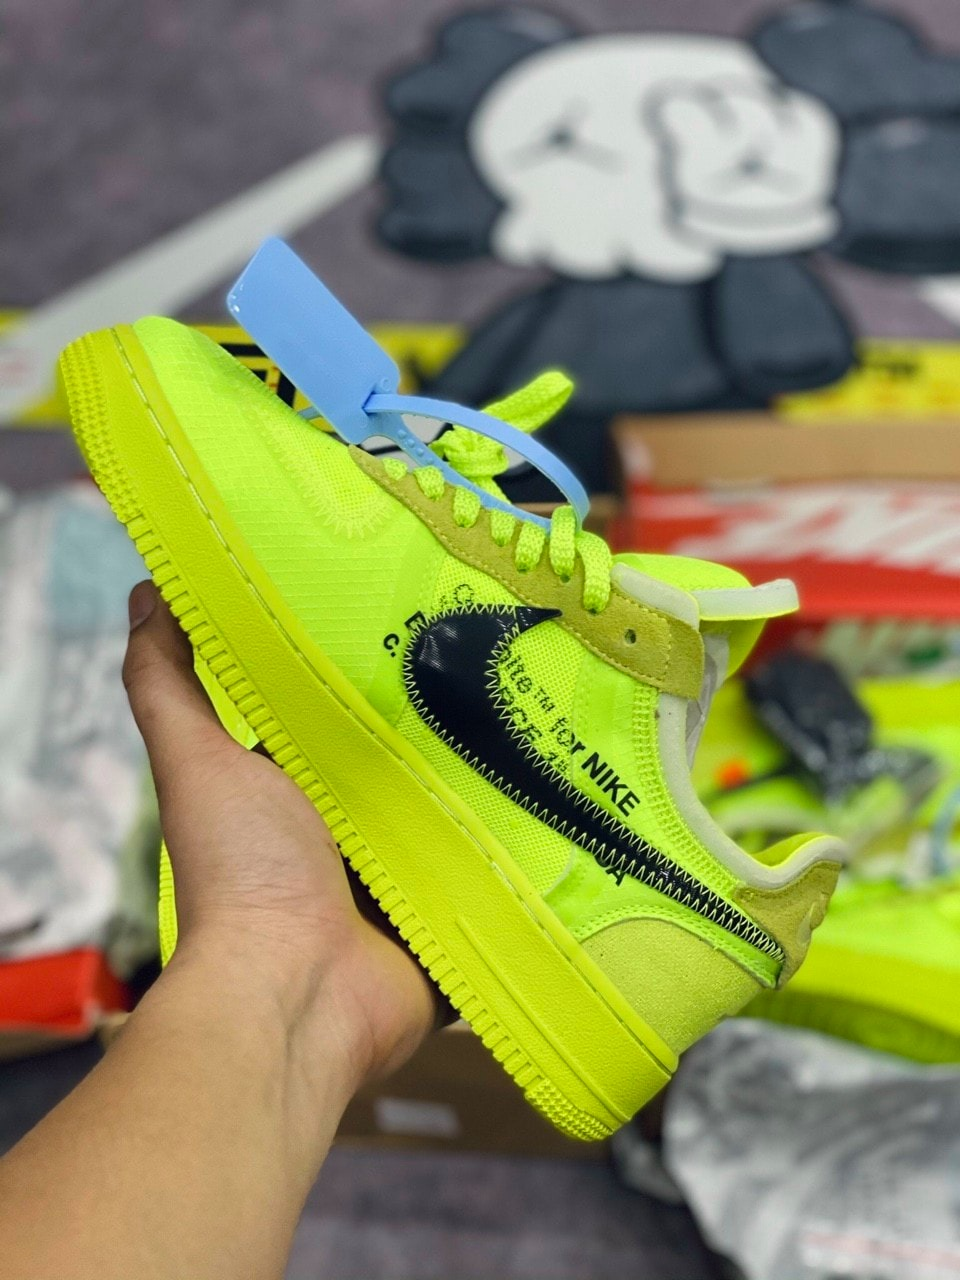 Nike Air Force 1 Low Off White Volt like auth